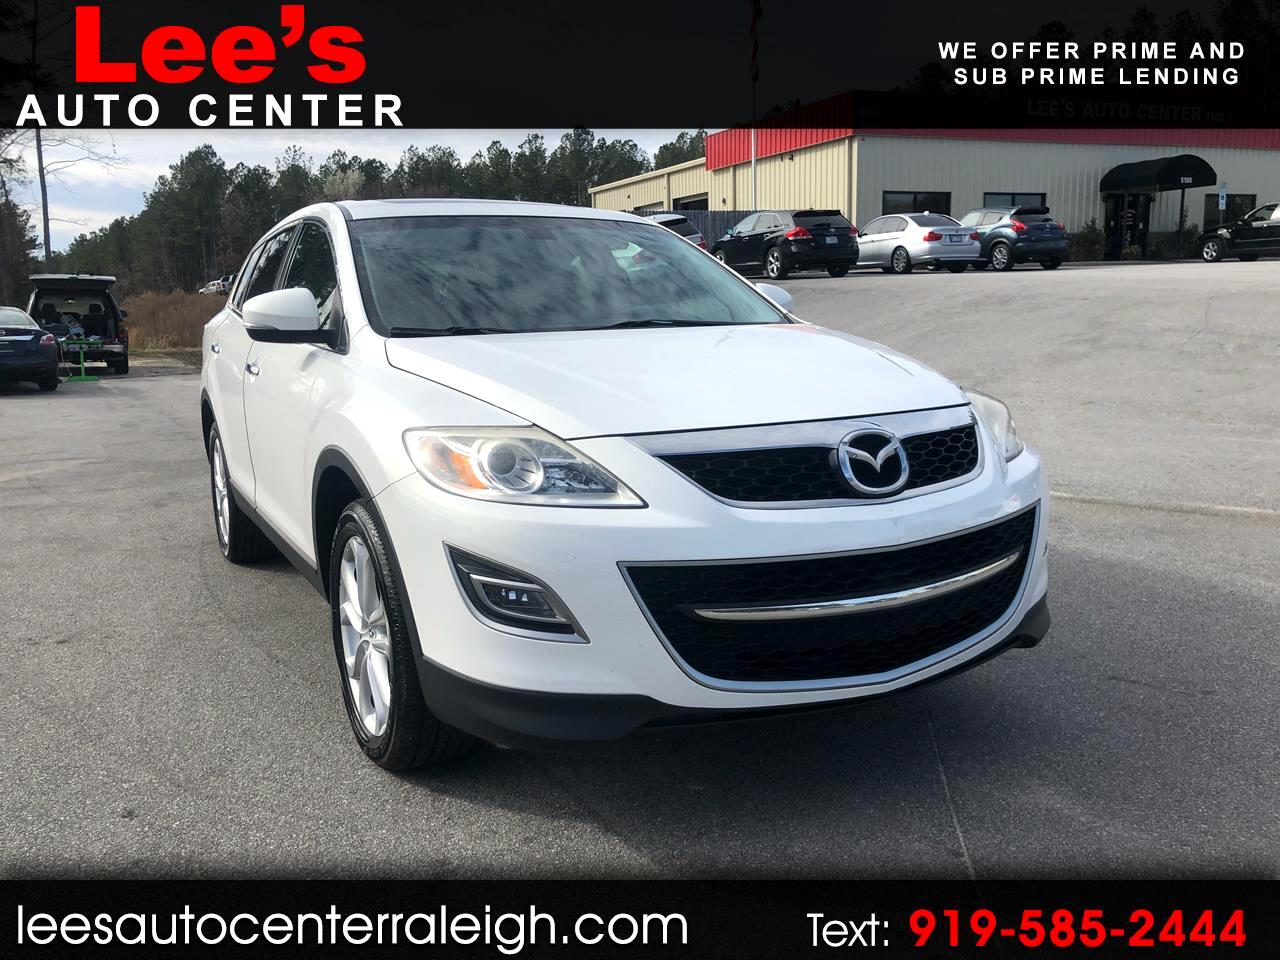 2012 Mazda CX-9 FWD 4dr Grand Touring